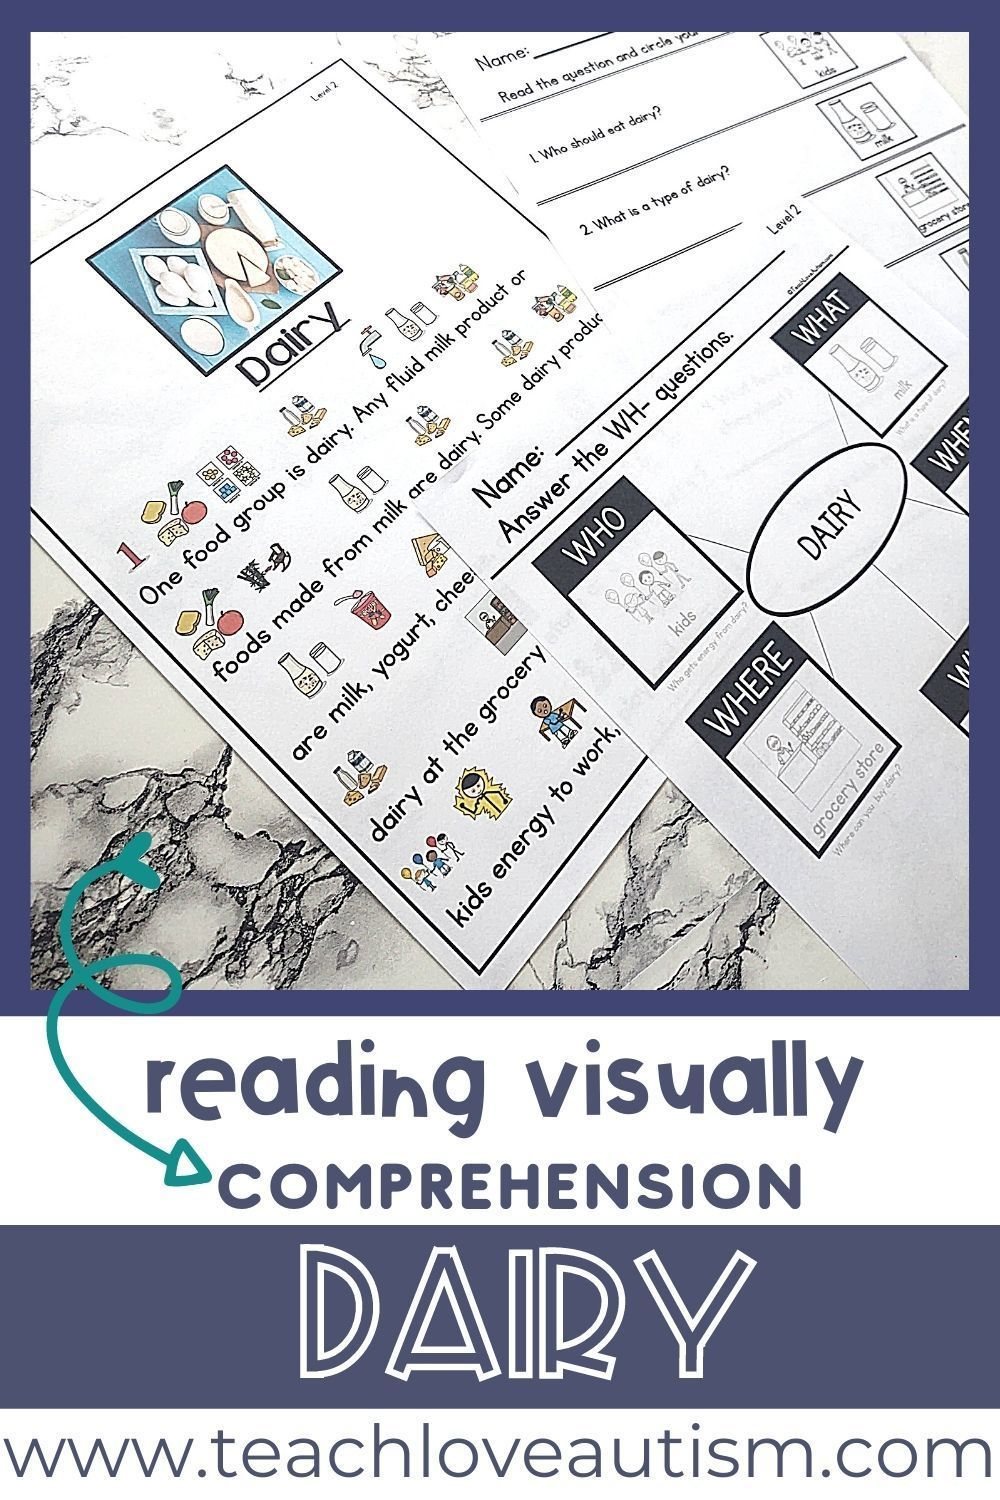 Dairy Reading Visually Comprehension Shop Teach Love Autism In 2021 Autism Classroom Activities Reading Comprehension Skills Special Education Elementary [ 1500 x 1000 Pixel ]